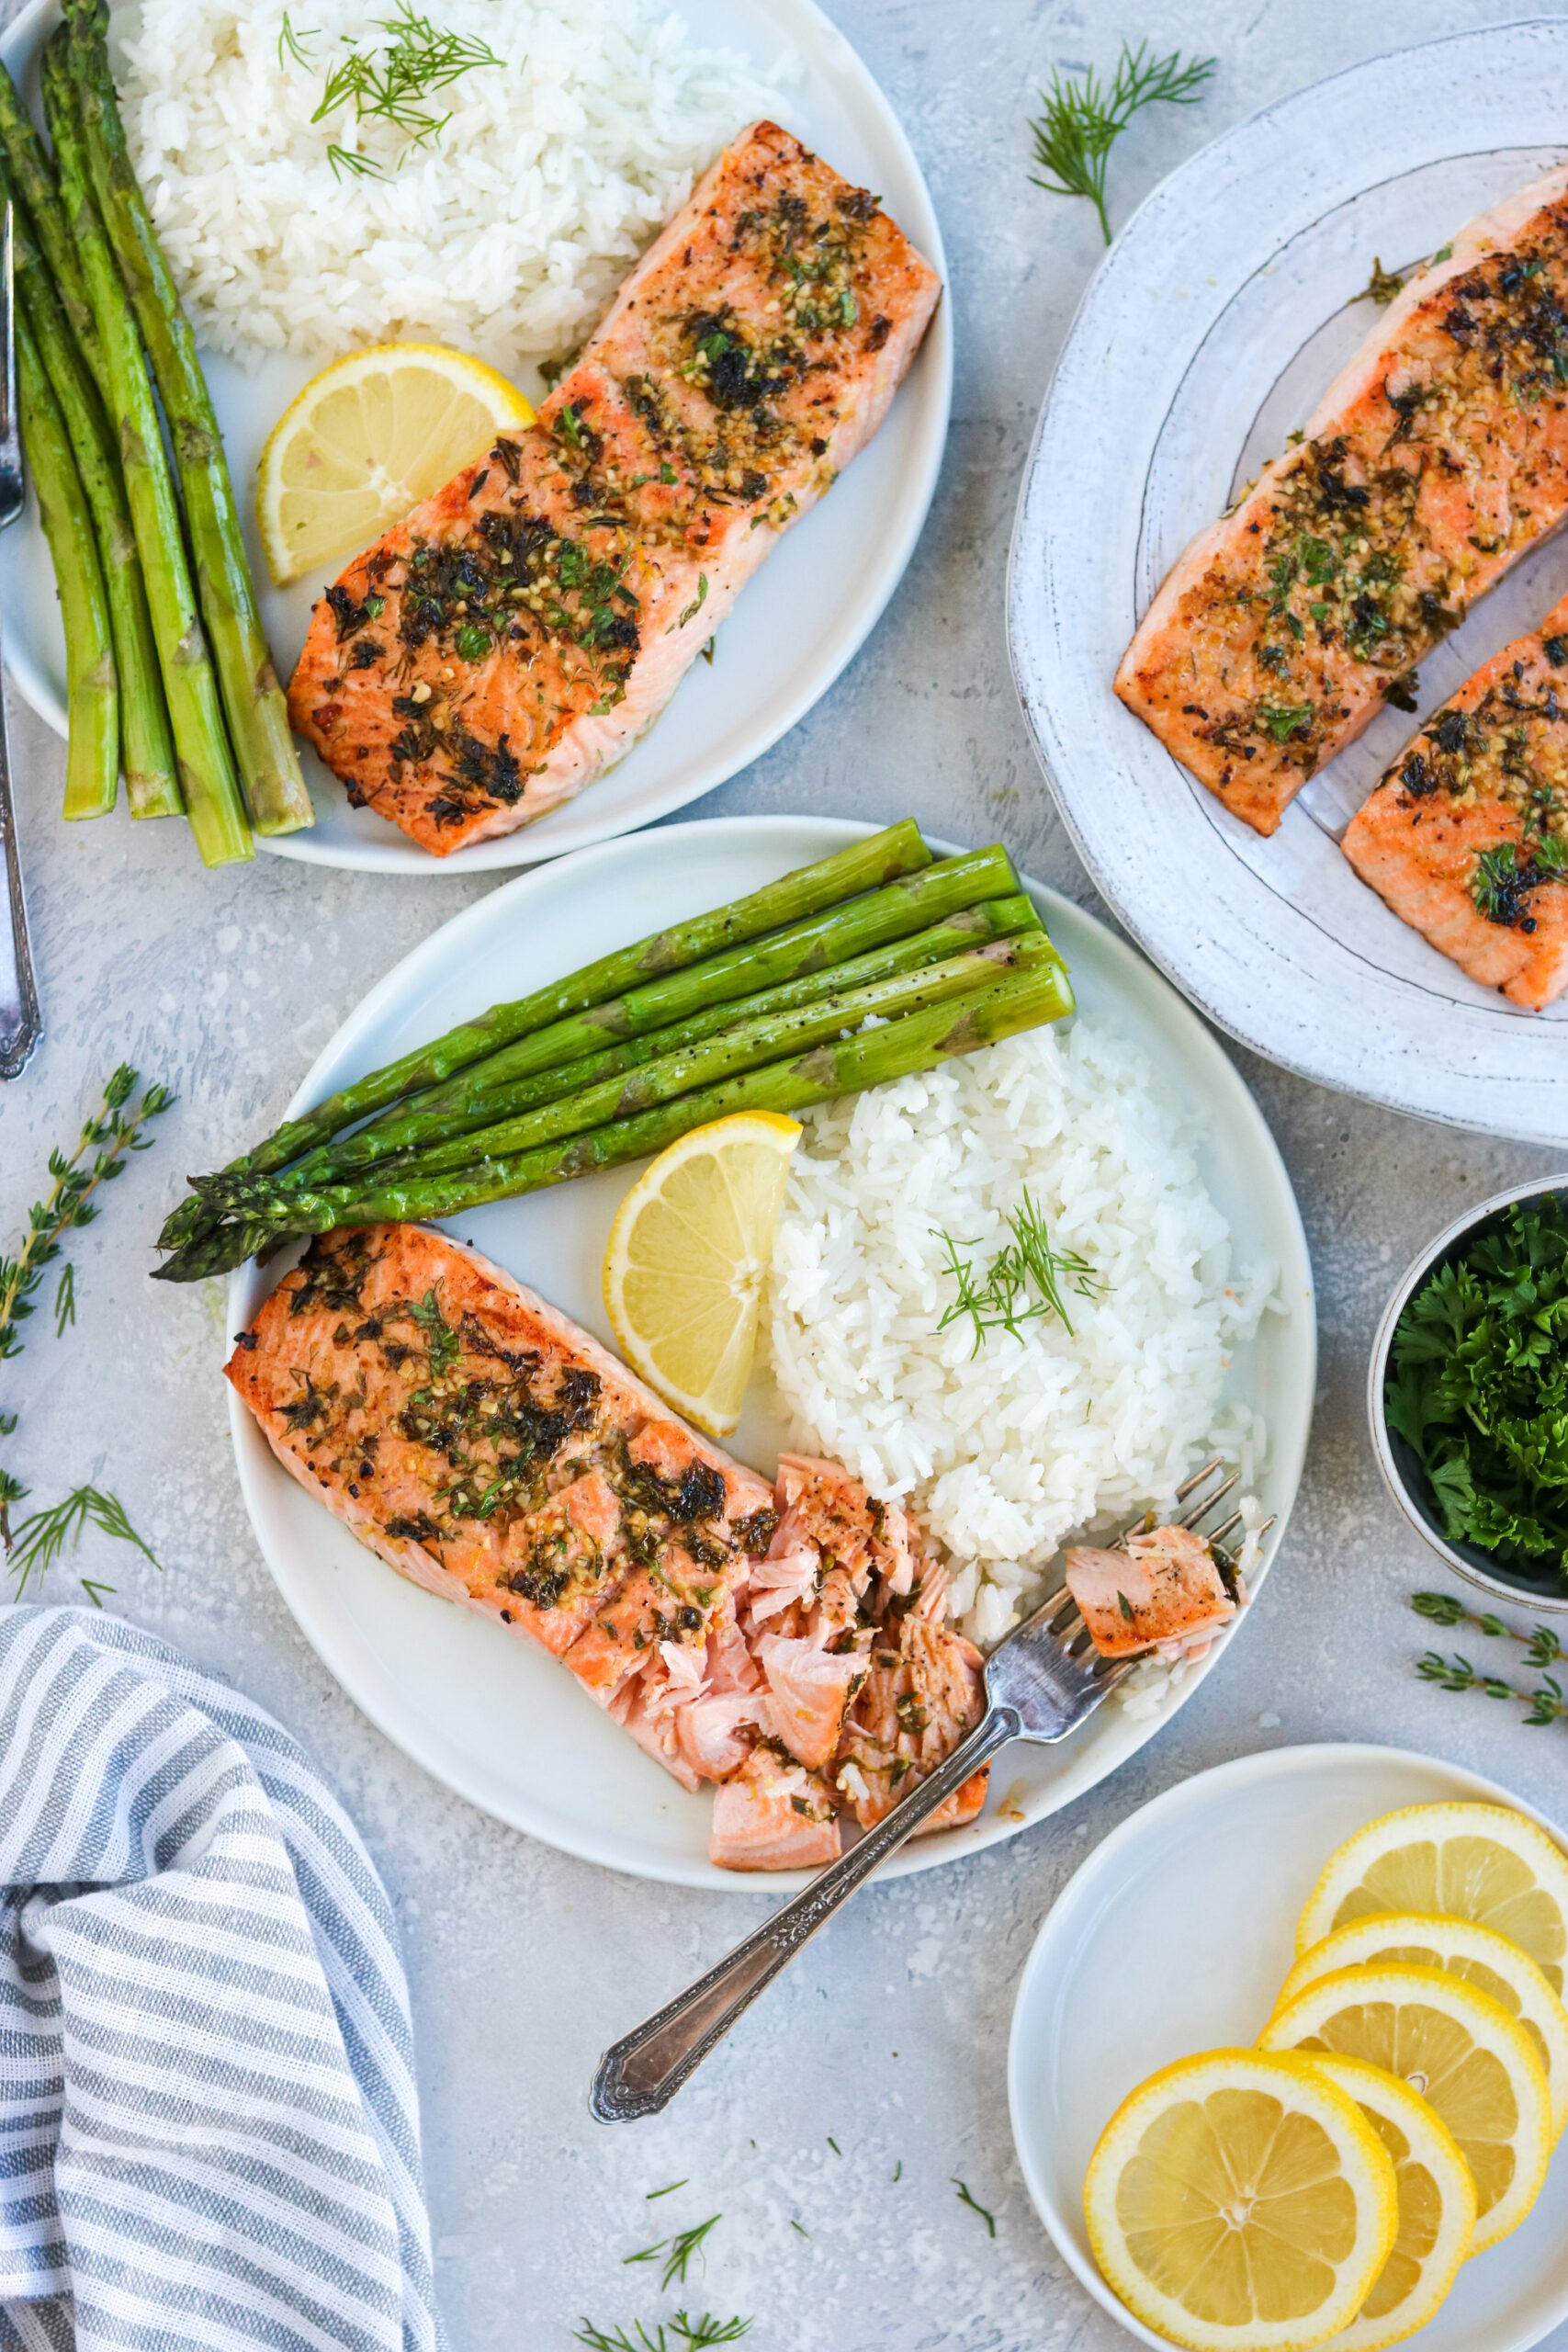 three plates of garlic herb baked salmon on a white plate with asparagus, white rice, and a lemon wedge, next to a silver fork with a white background